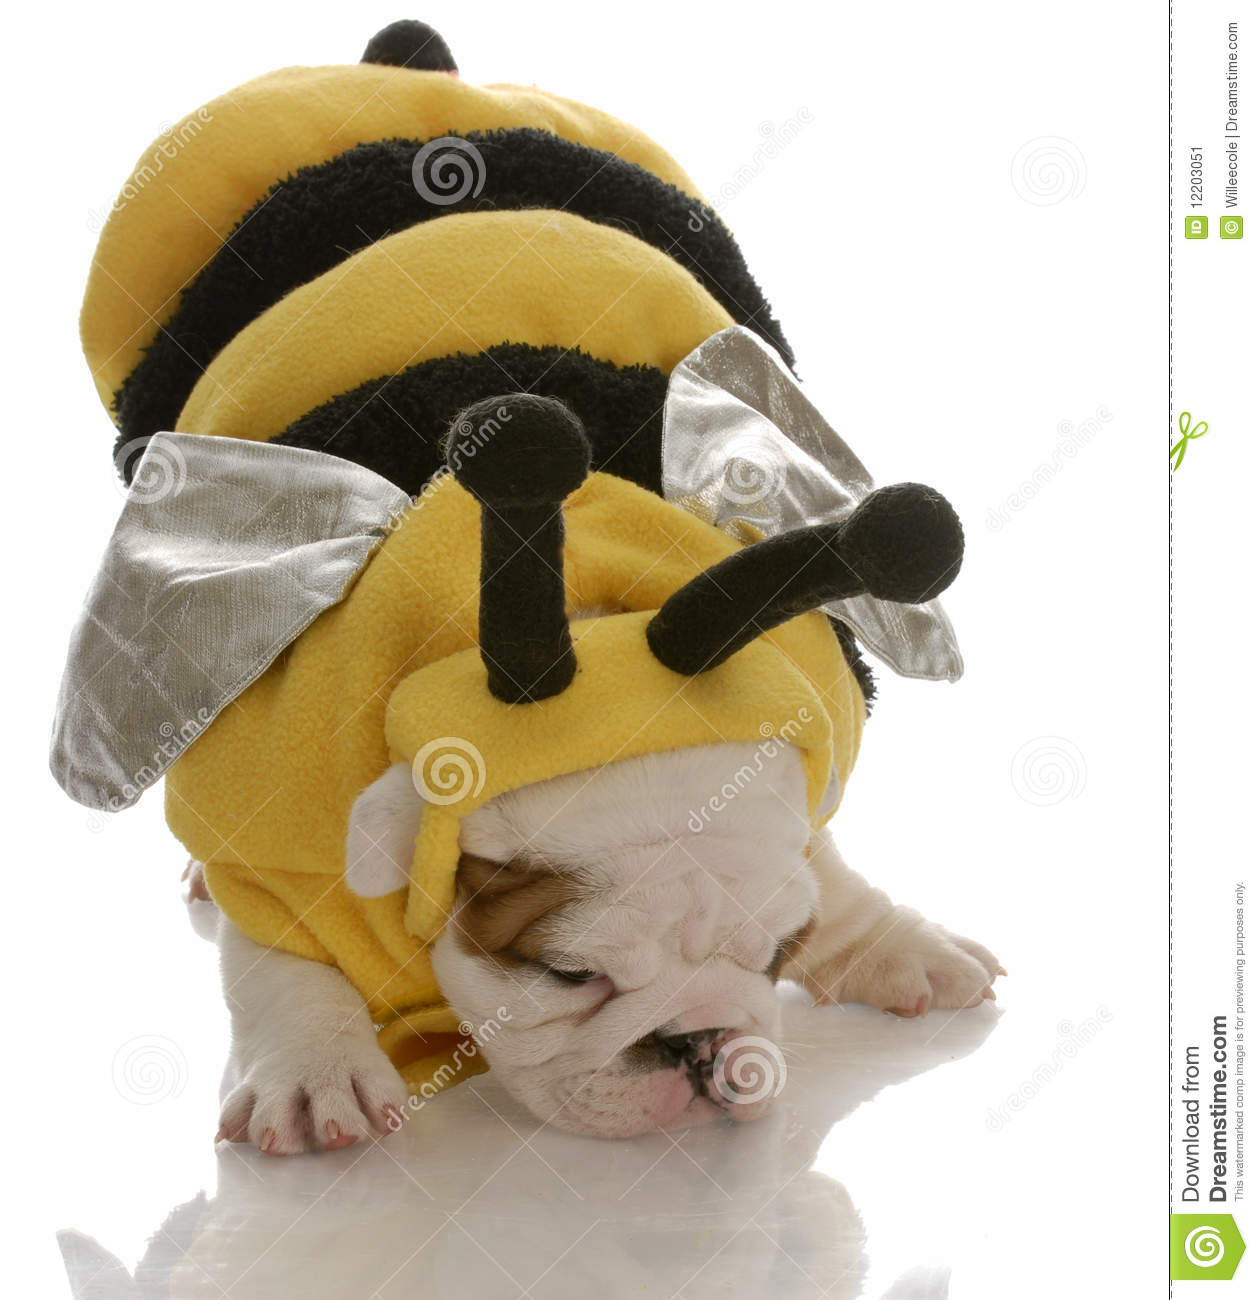 Bulldog puppy dressed as a bee